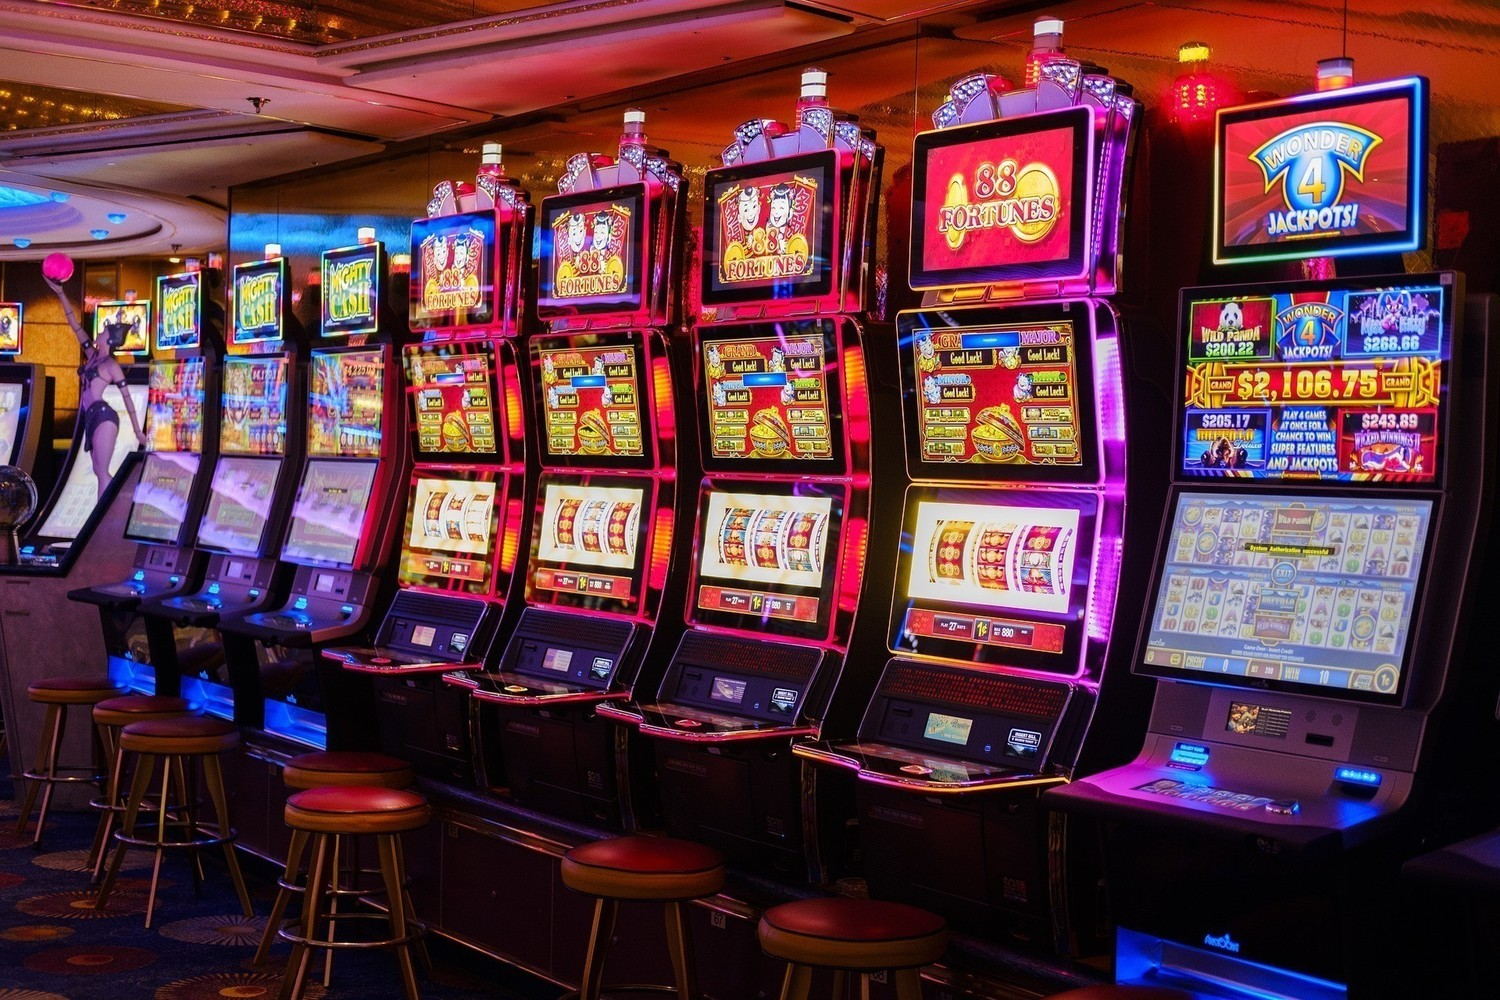 Experience the crunch of gambling with slot machines!